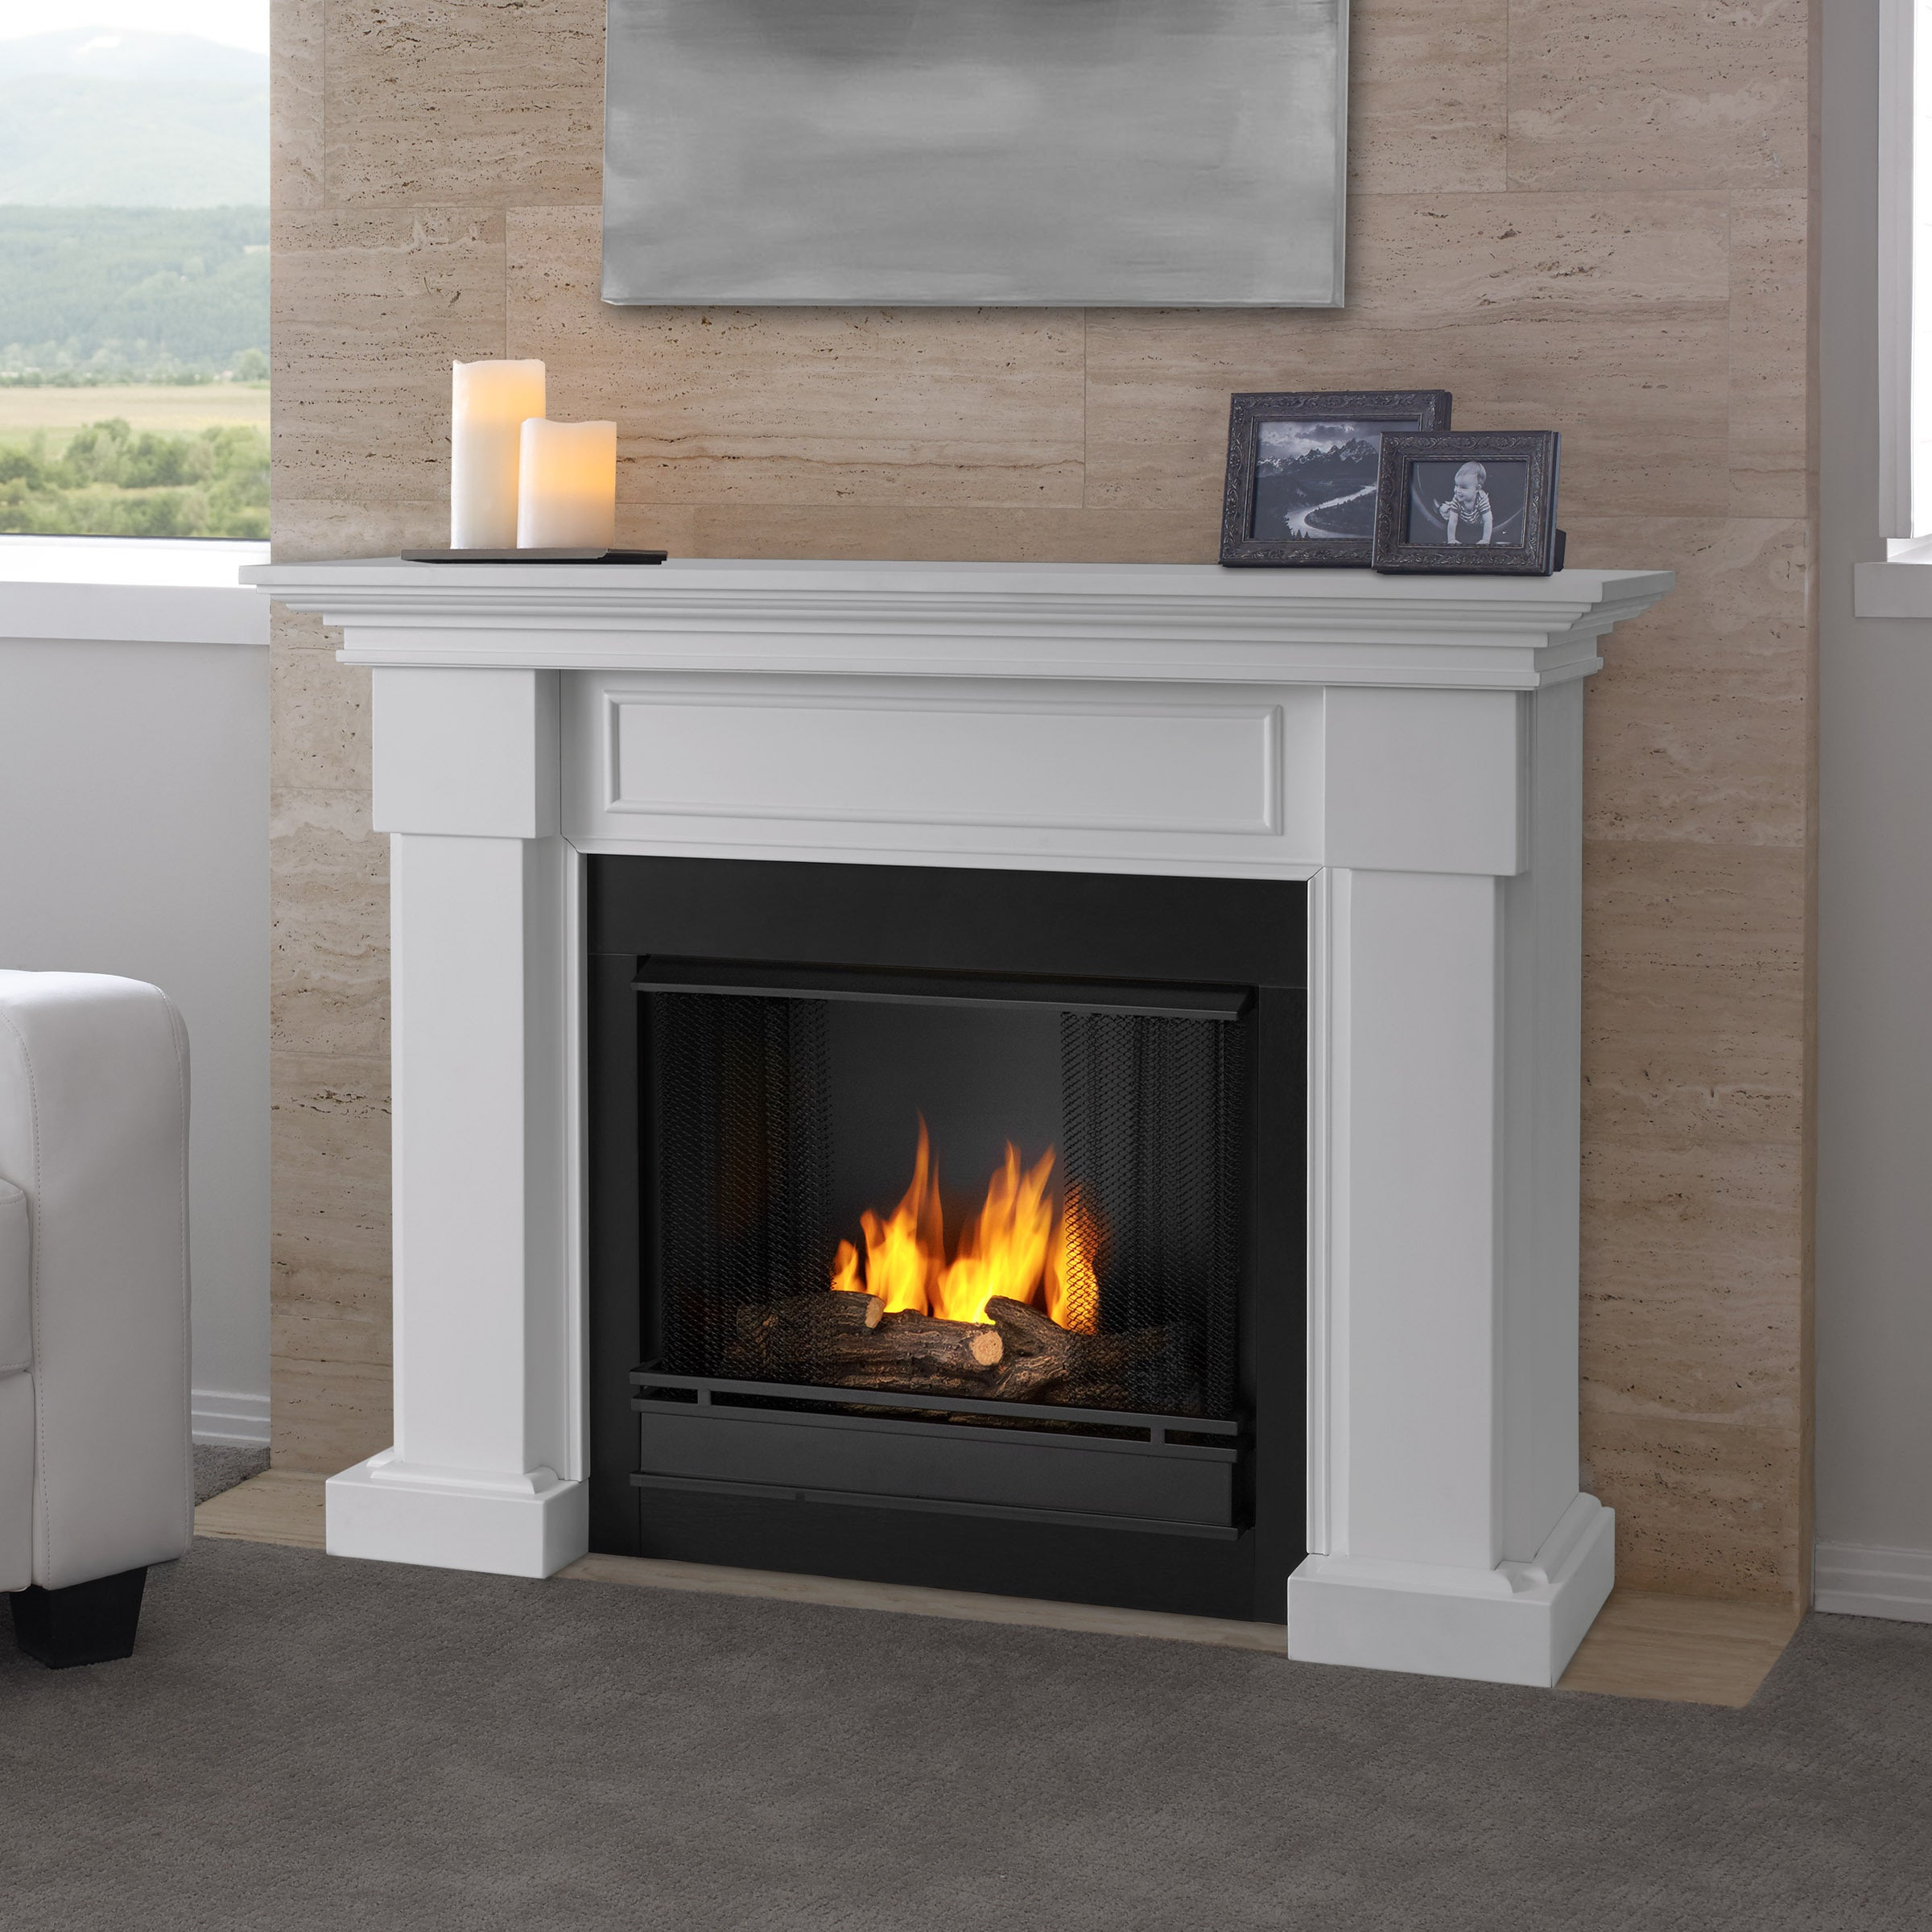 gel fireplace product flame today fuel frederick shipping home entertainment real center by white free garden overstock